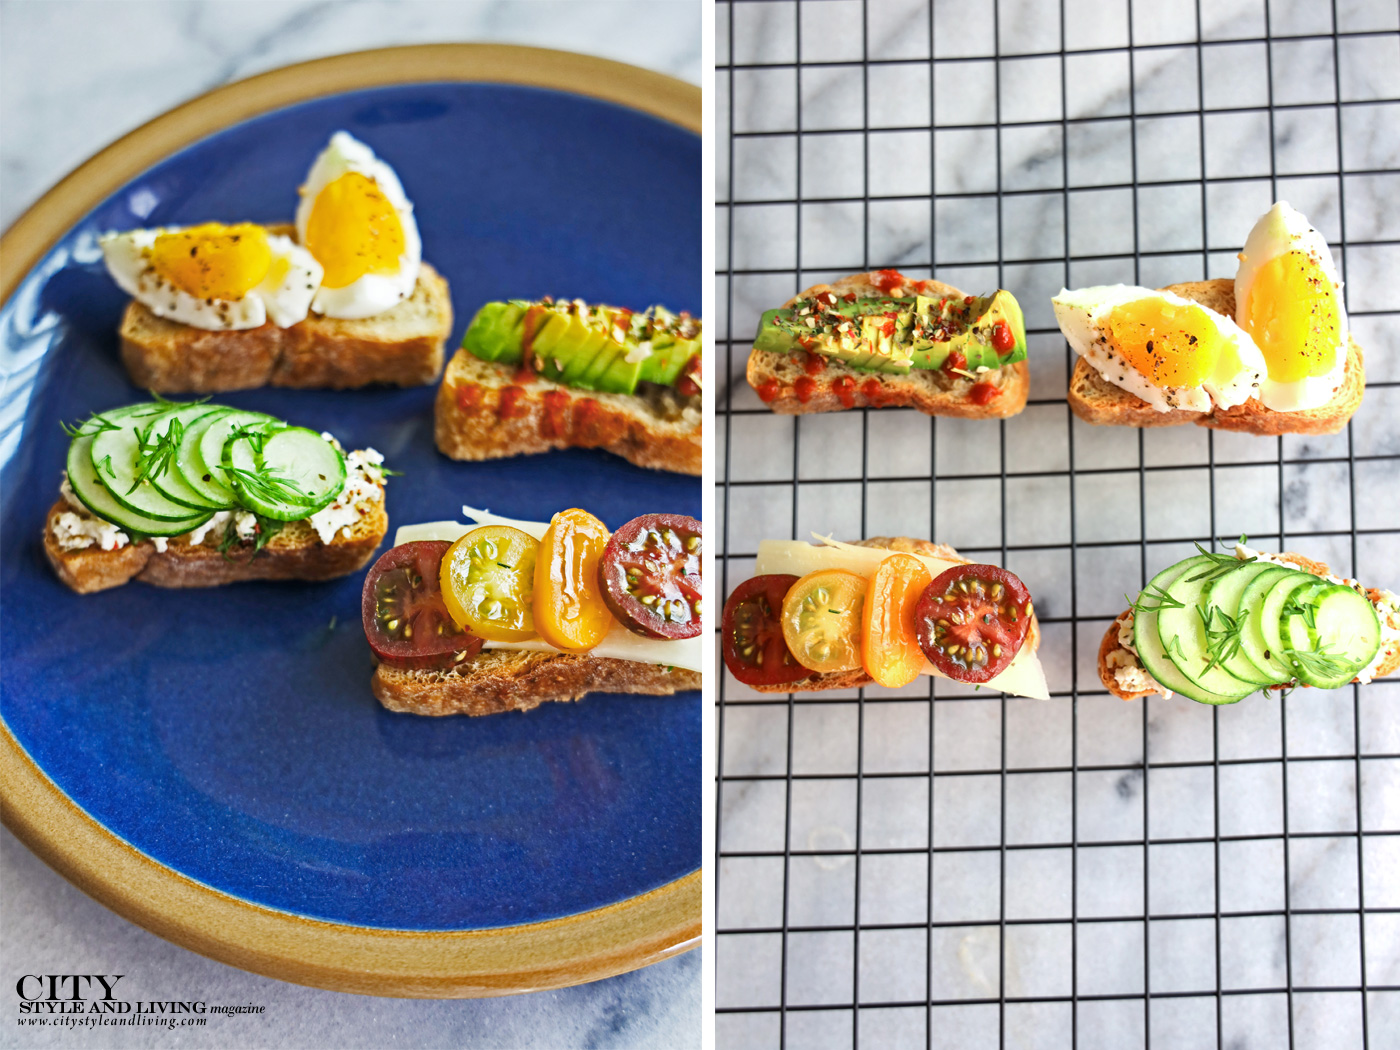 City Style and Living Magazine spring 2020 You're A Real Slice! (Crostini) smorrebrod